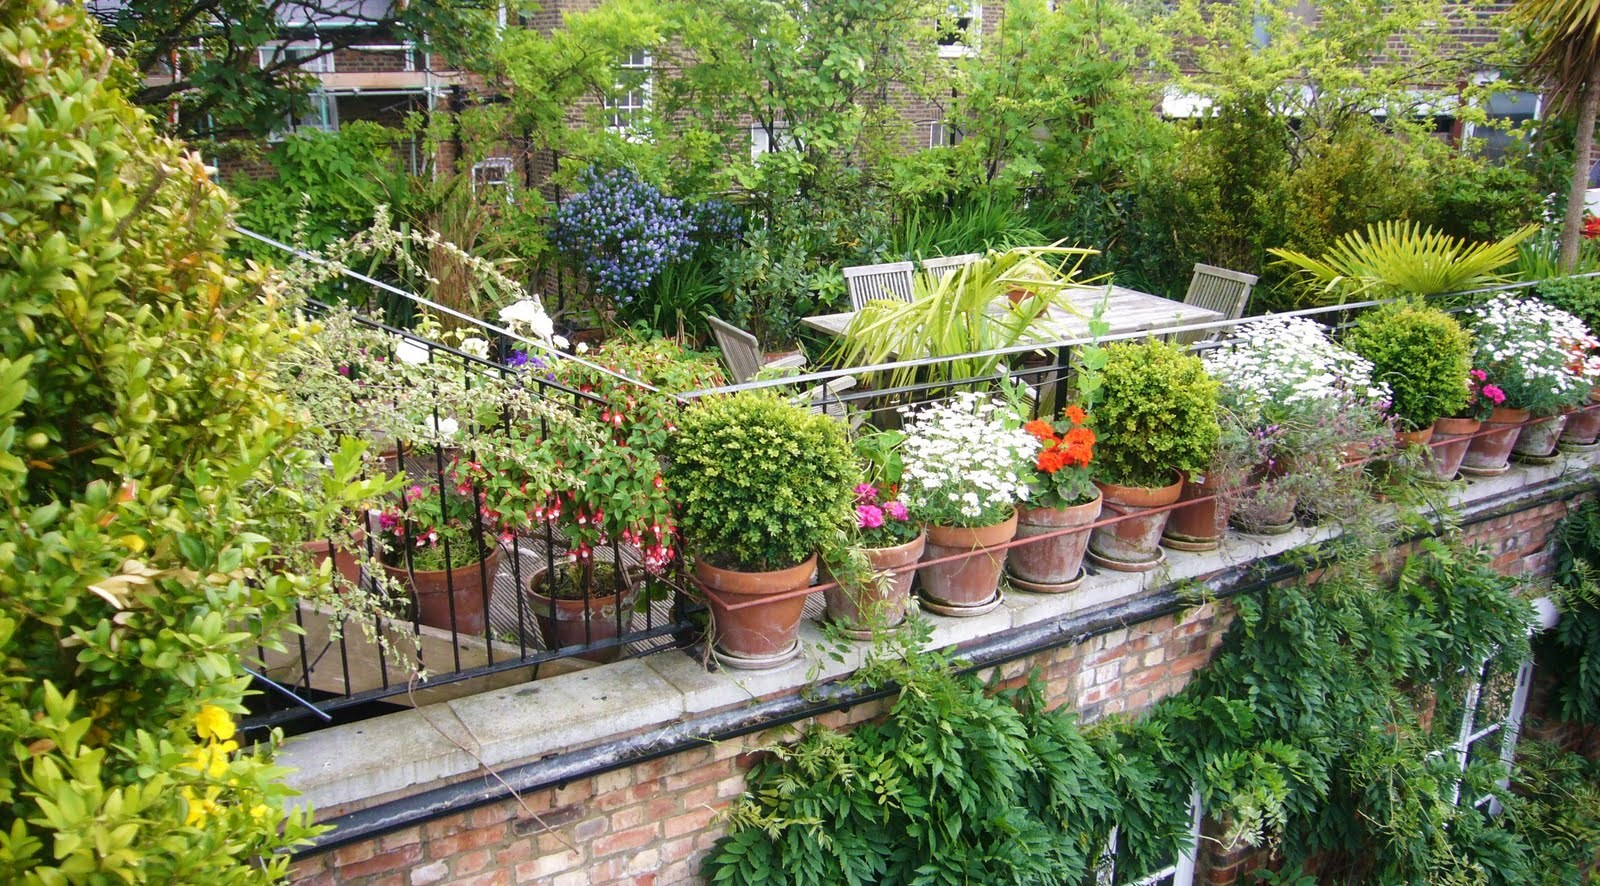 Fabulous space saving designs for the rooftop garden for Garden design ideas photos